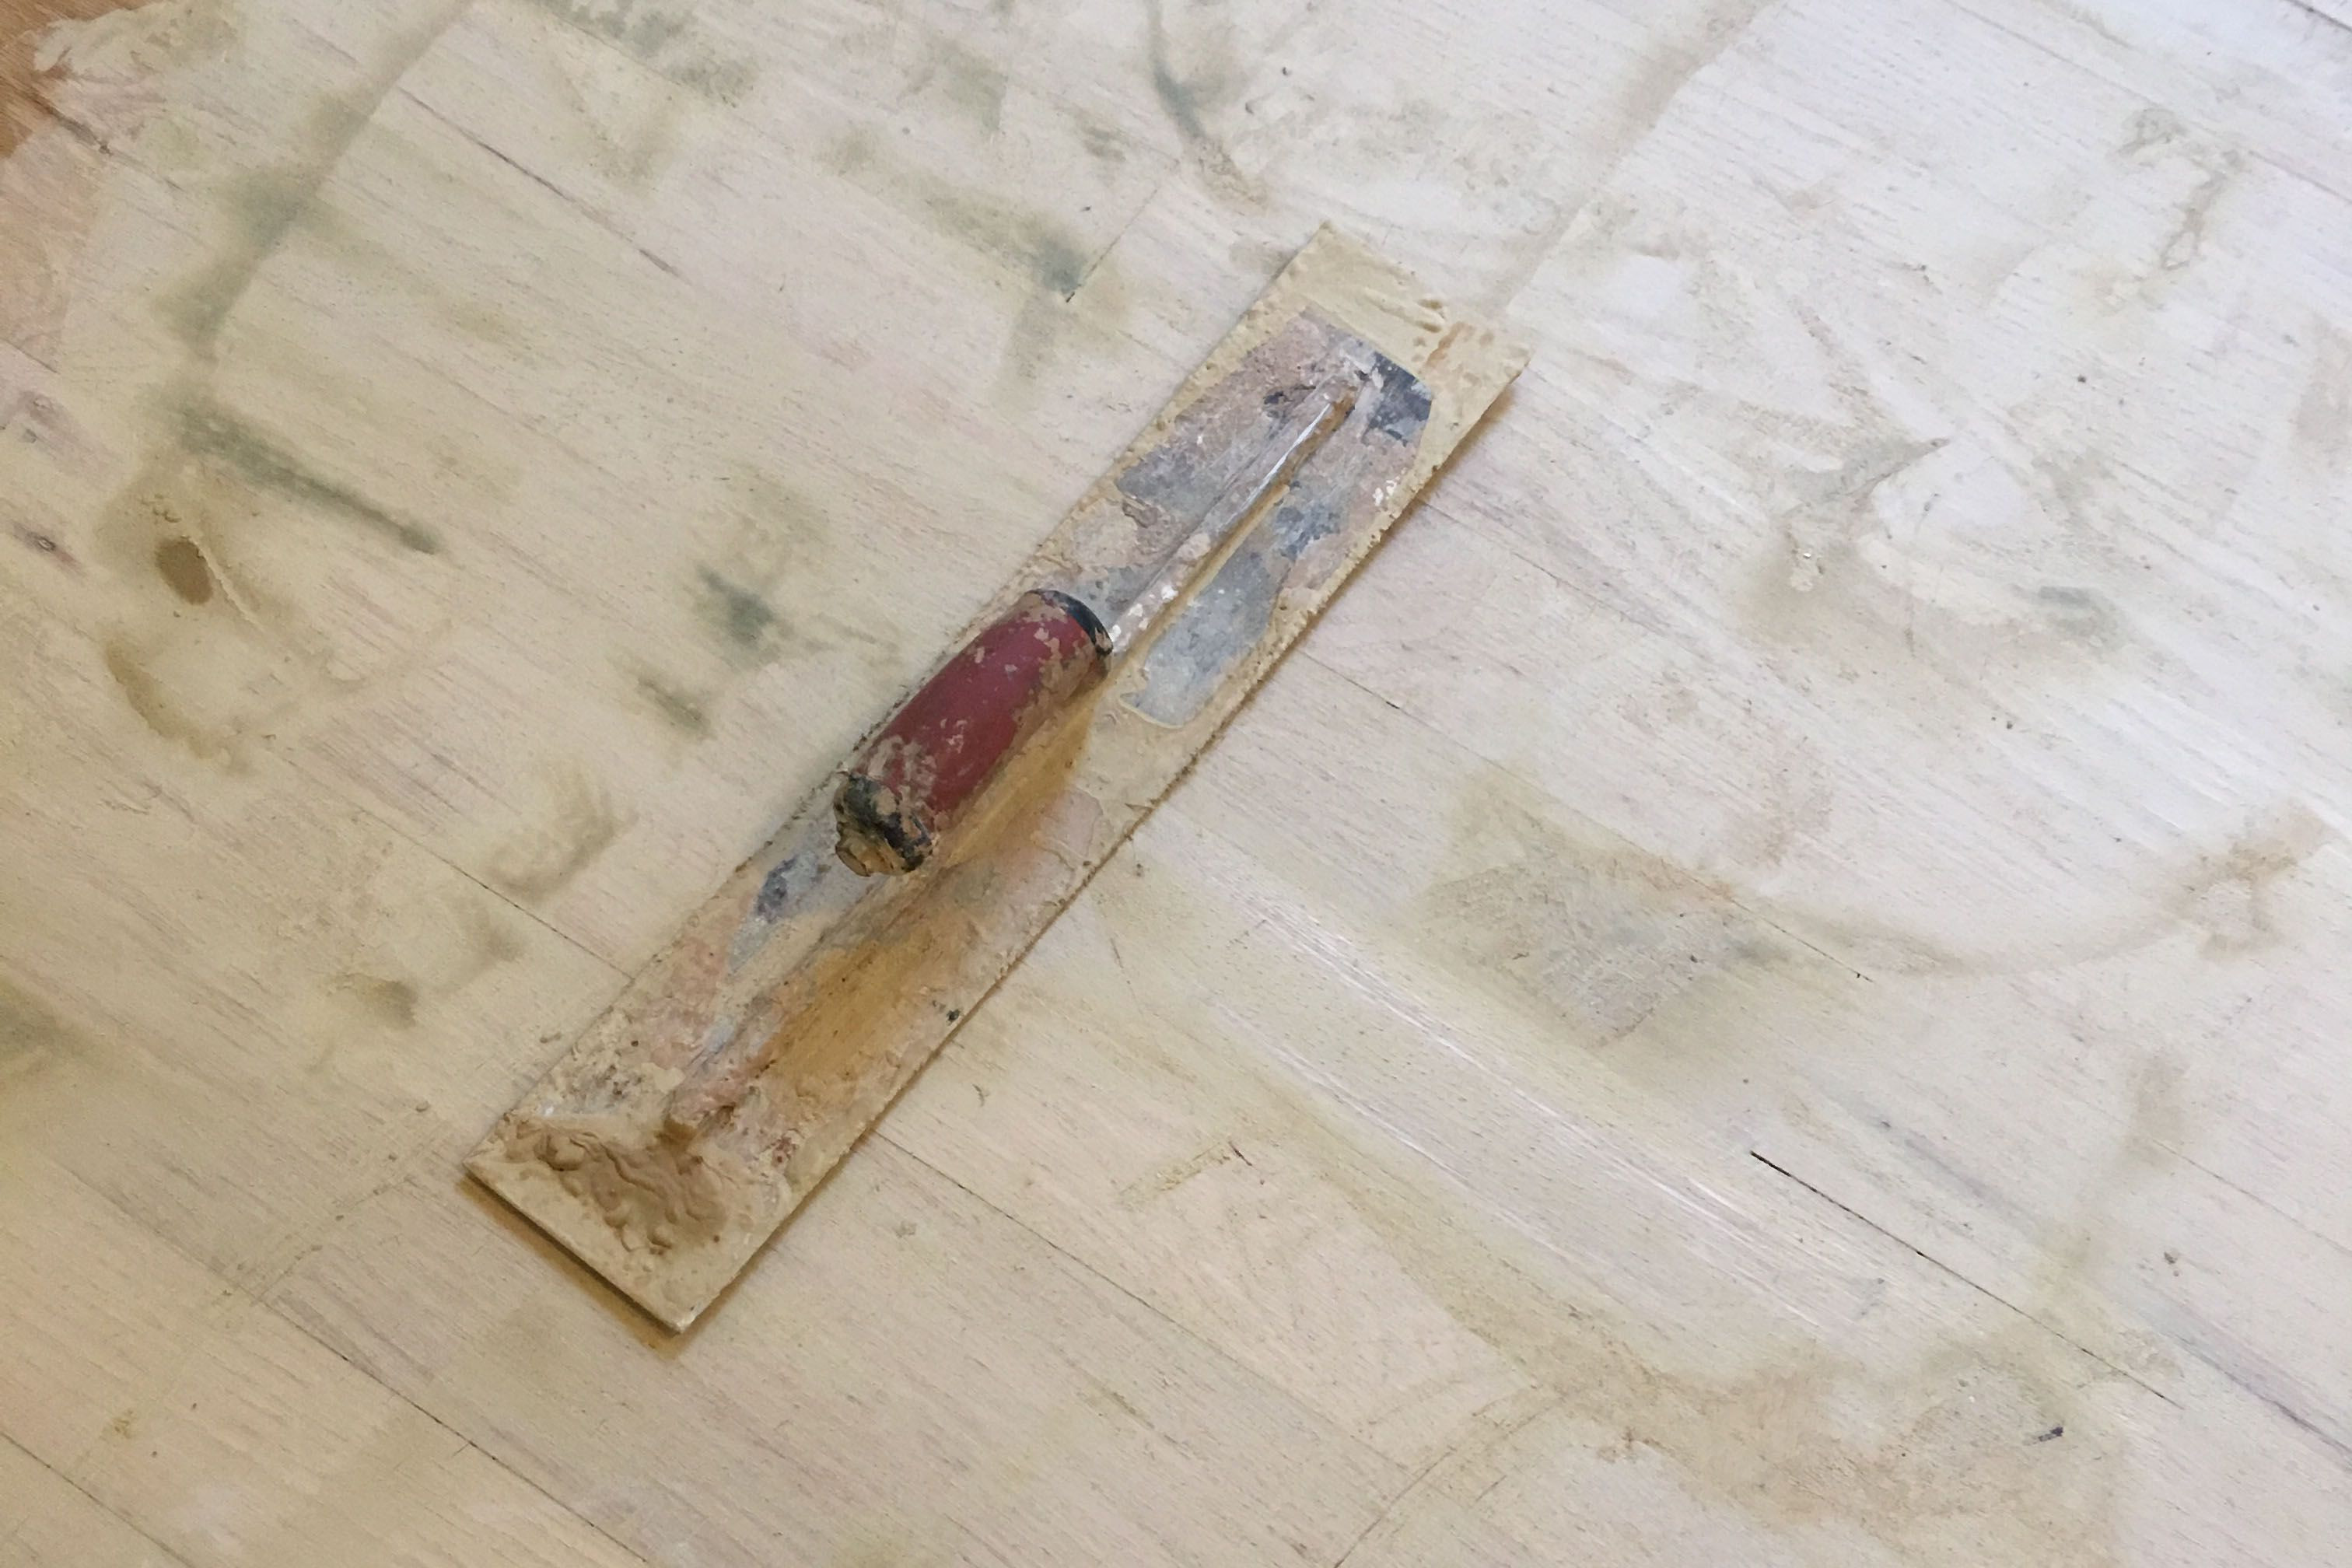 hardwood floor repair filler of 7 things to know before you refinish hardwood floors with trough hardwood floor manhattan avenue via smallspaces about com 579138783df78c173490f8a5